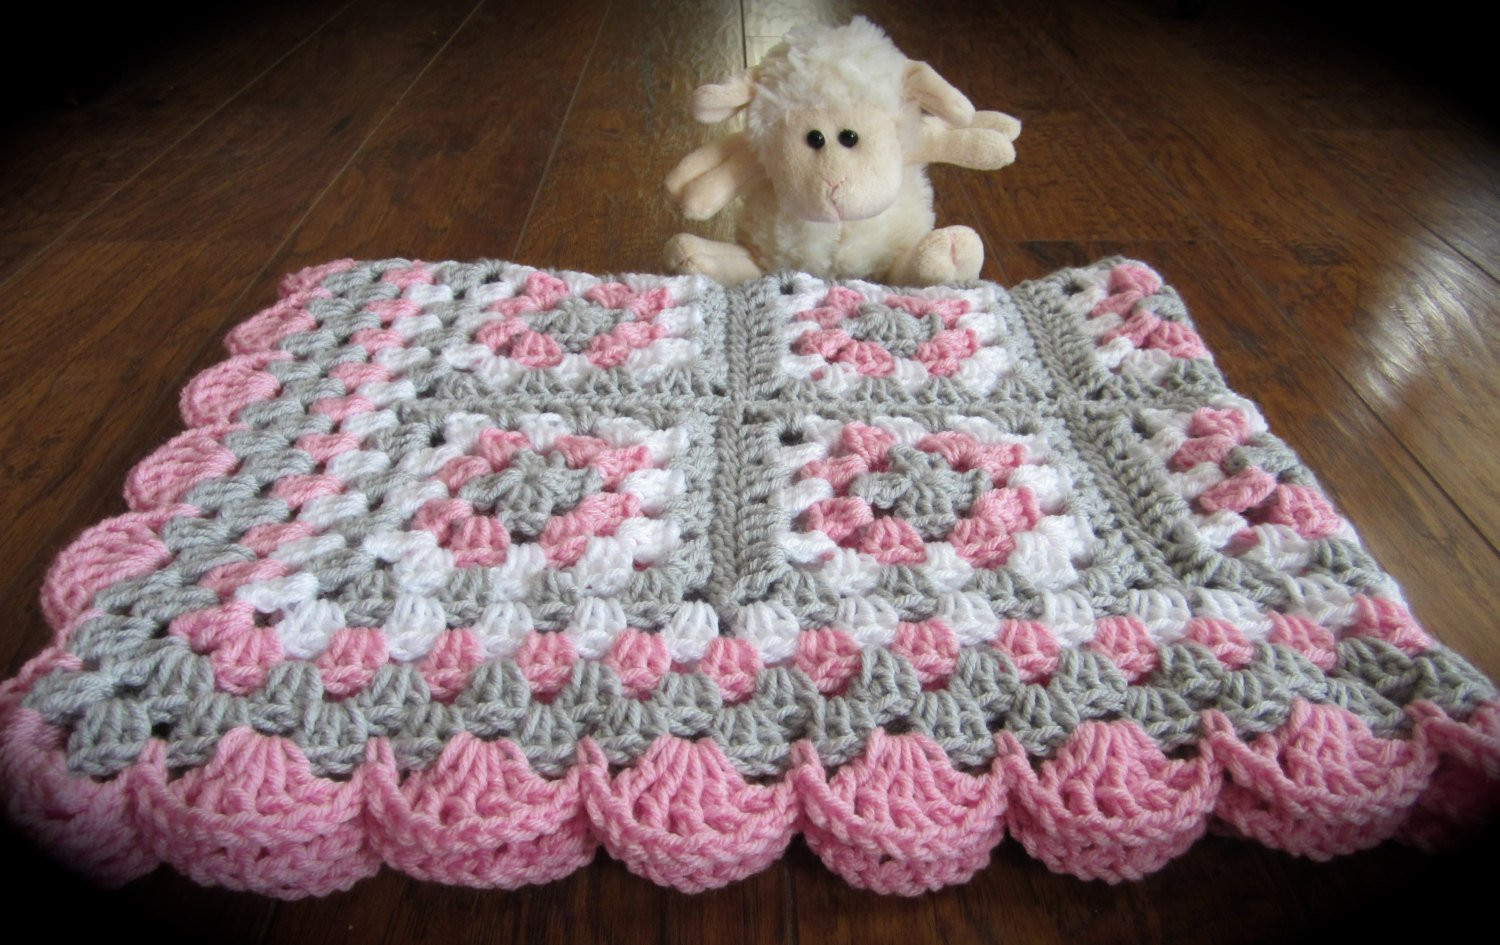 Best Of Pink Gray Baby Granny Square Blanket Crochet Pink and Gray Baby Blankets to Crochet Of Amazing 46 Images Baby Blankets to Crochet